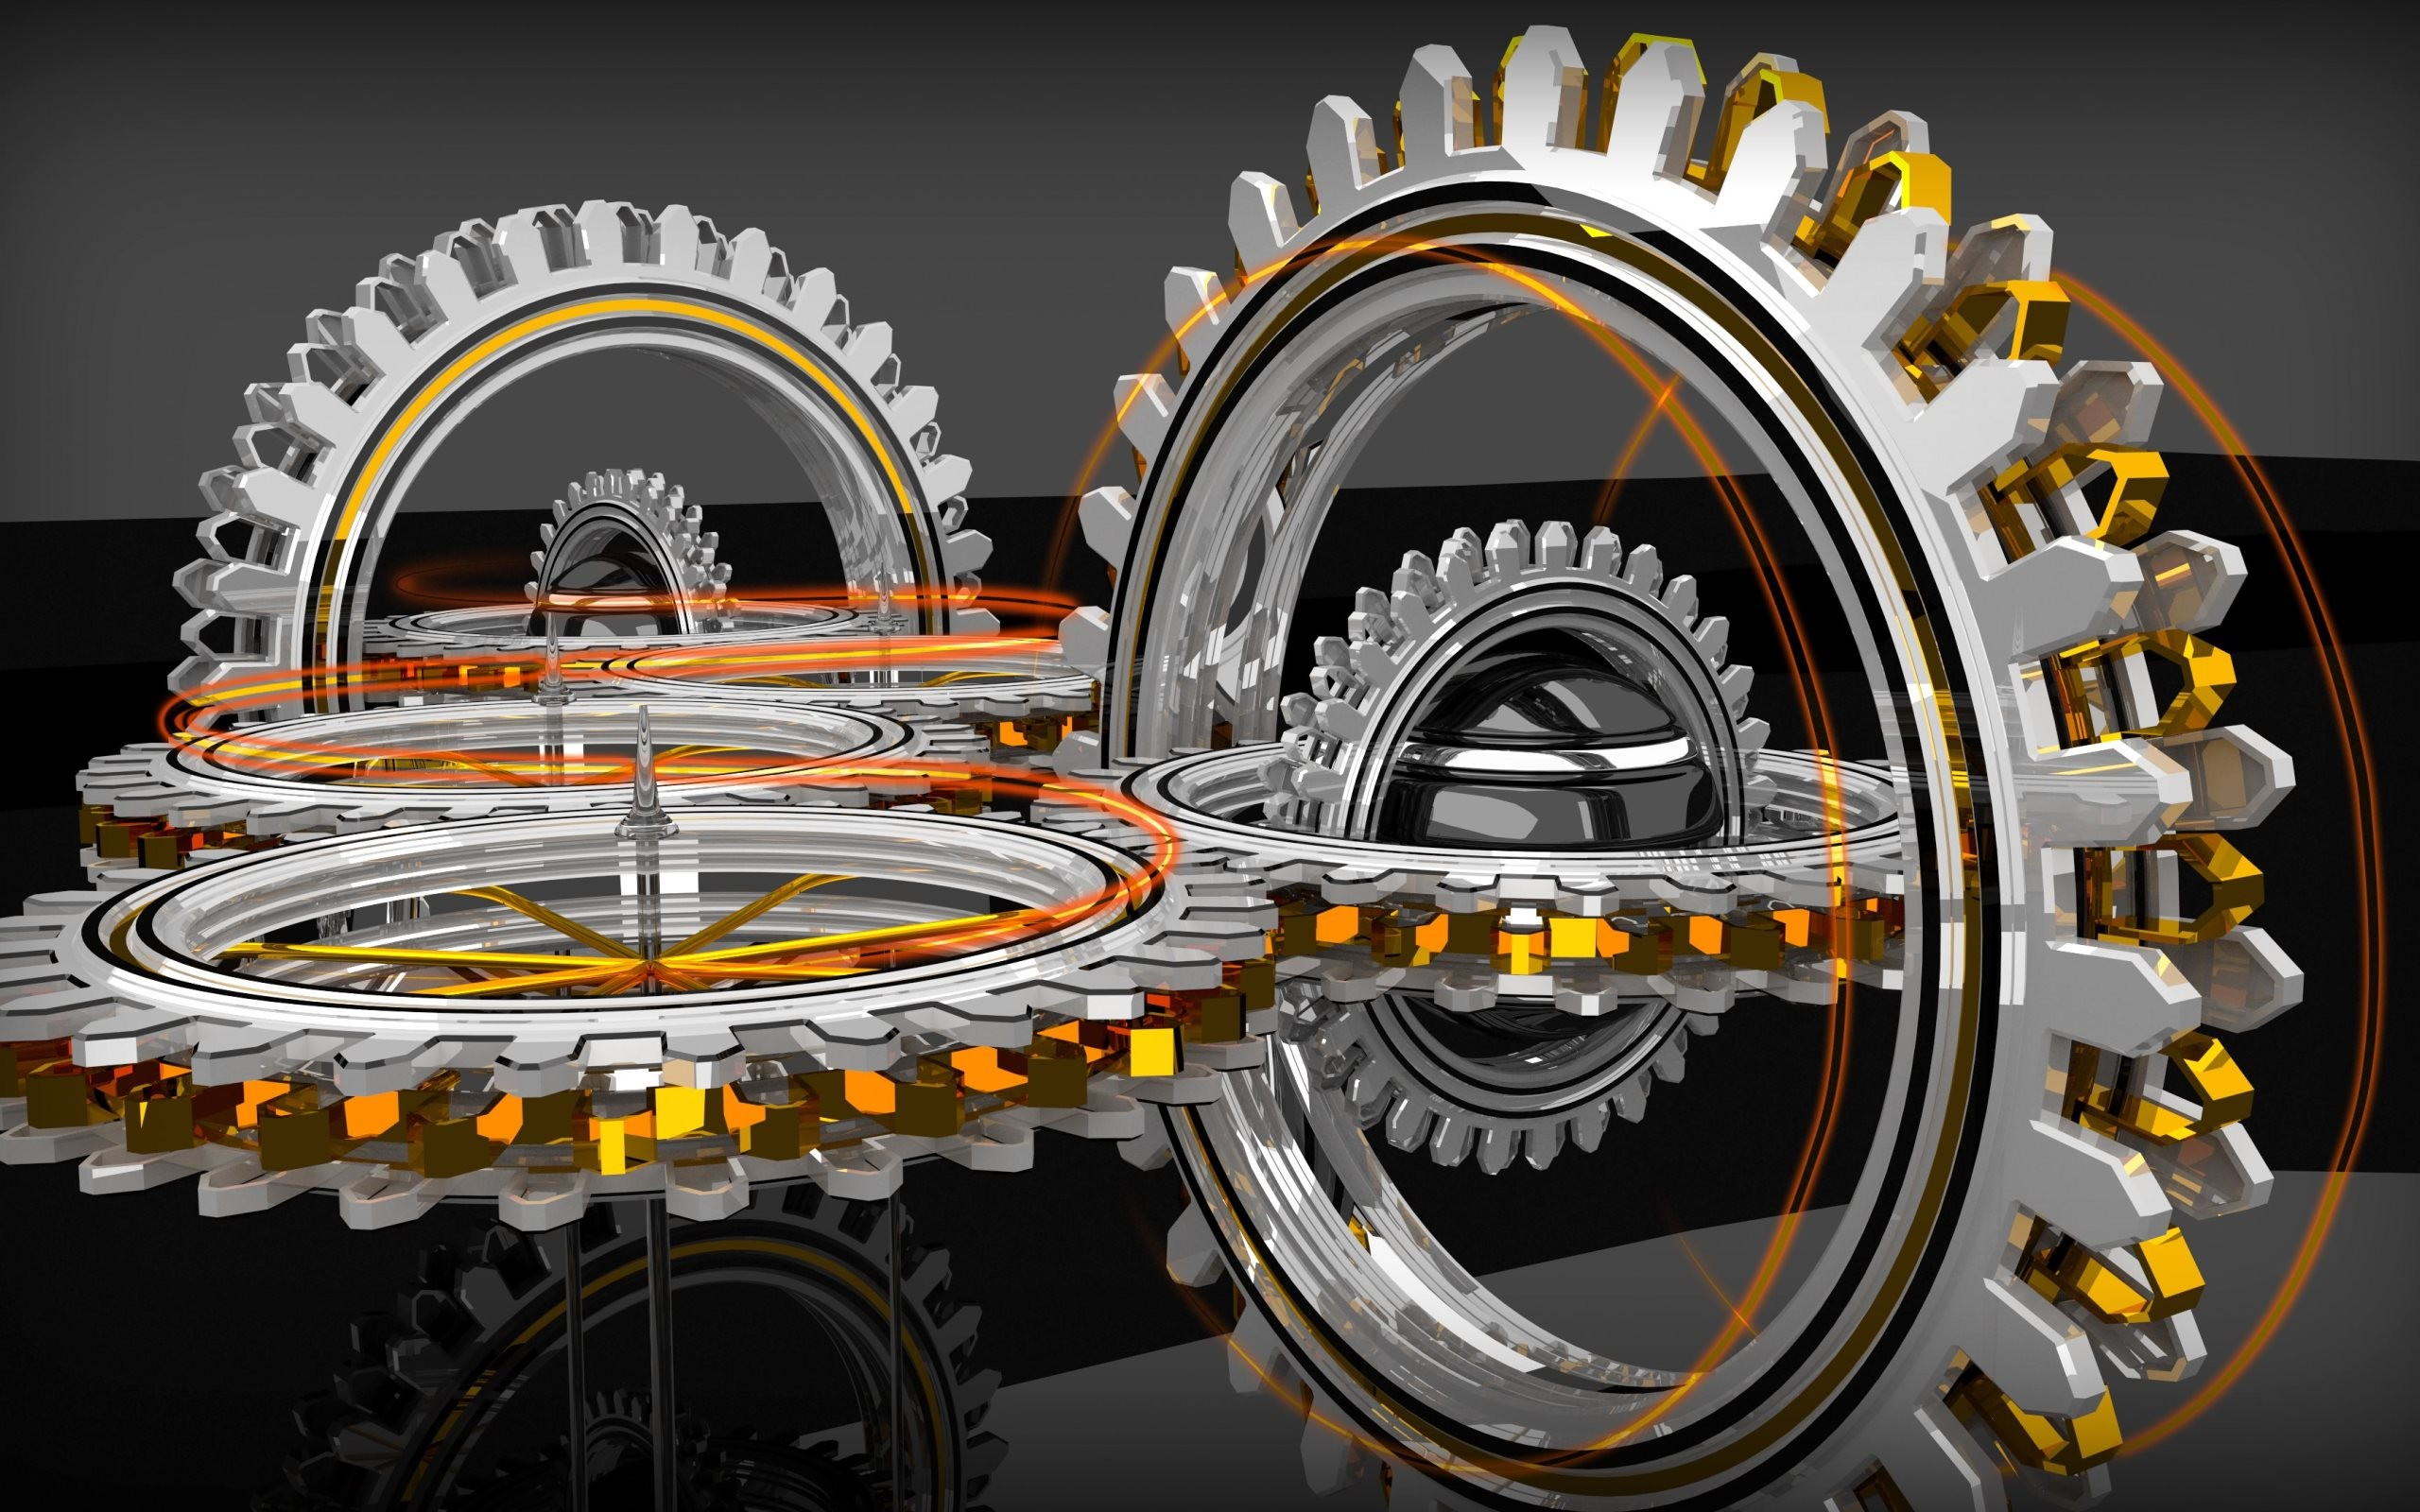 4K HD Wallpaper 3: Abstract 3D Concentric Gears